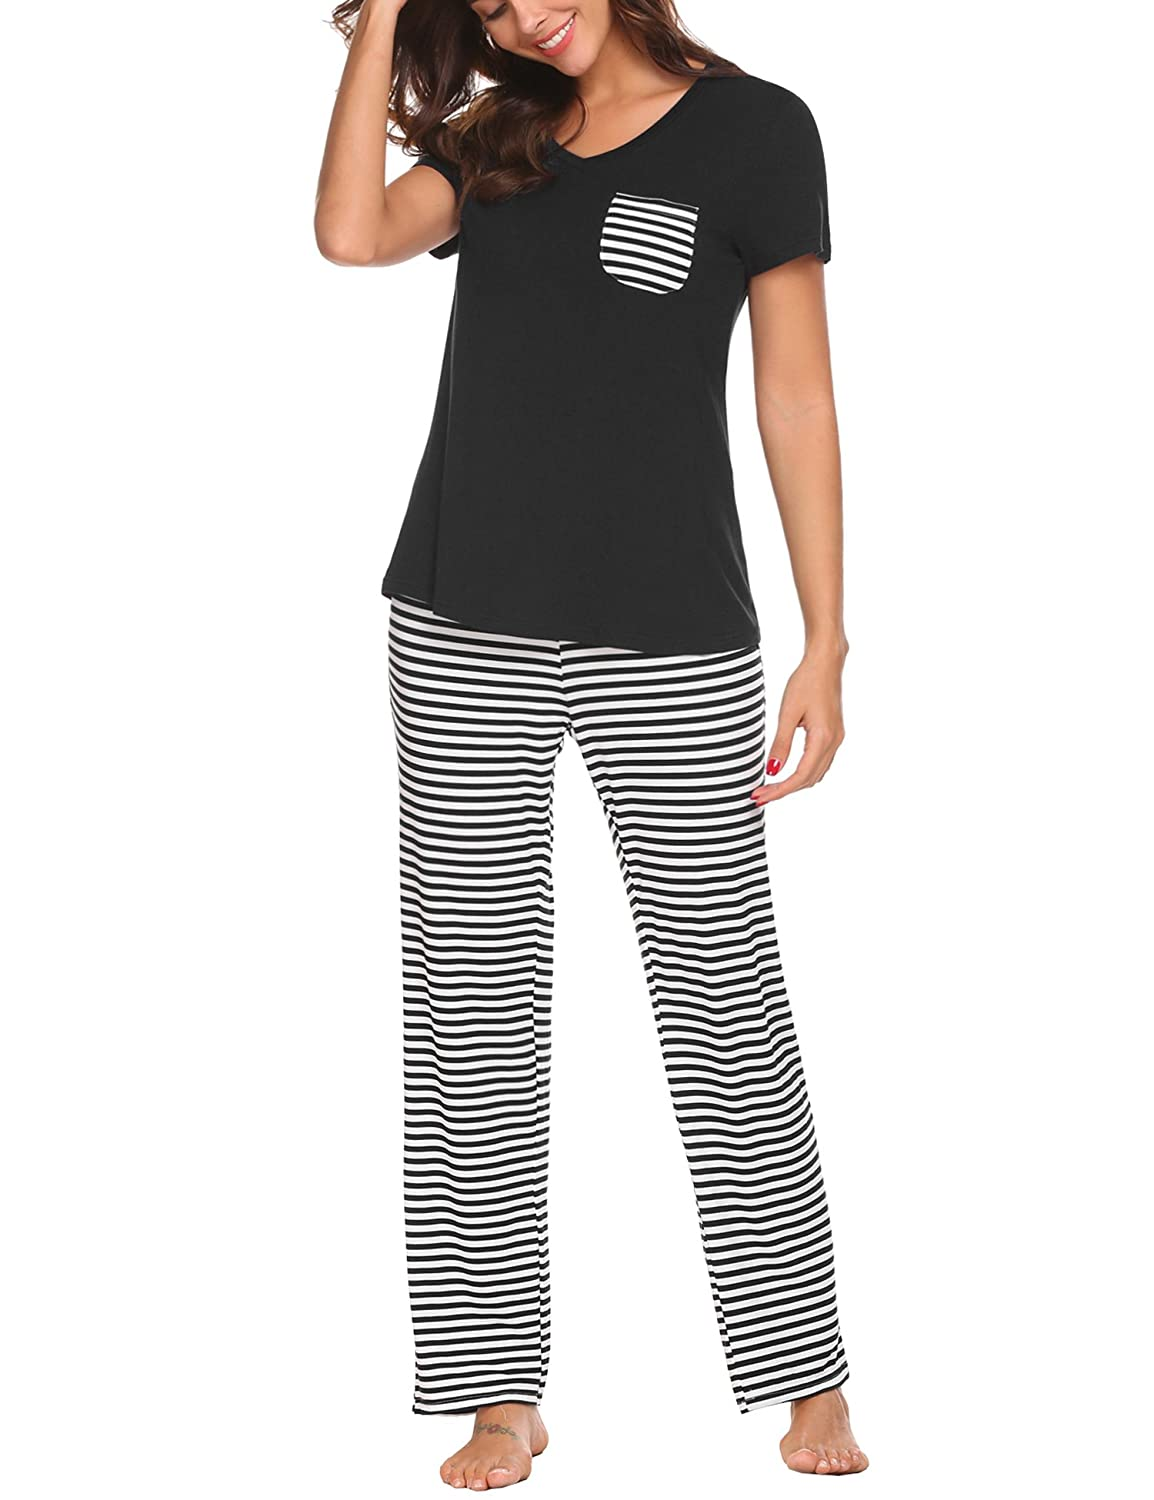 d30b260b8c6a71 Hotouch Womens Pajama Set Striped Short Sleeve Top & Pants Sleepwear Pjs  Sets at Amazon Women's Clothing store: